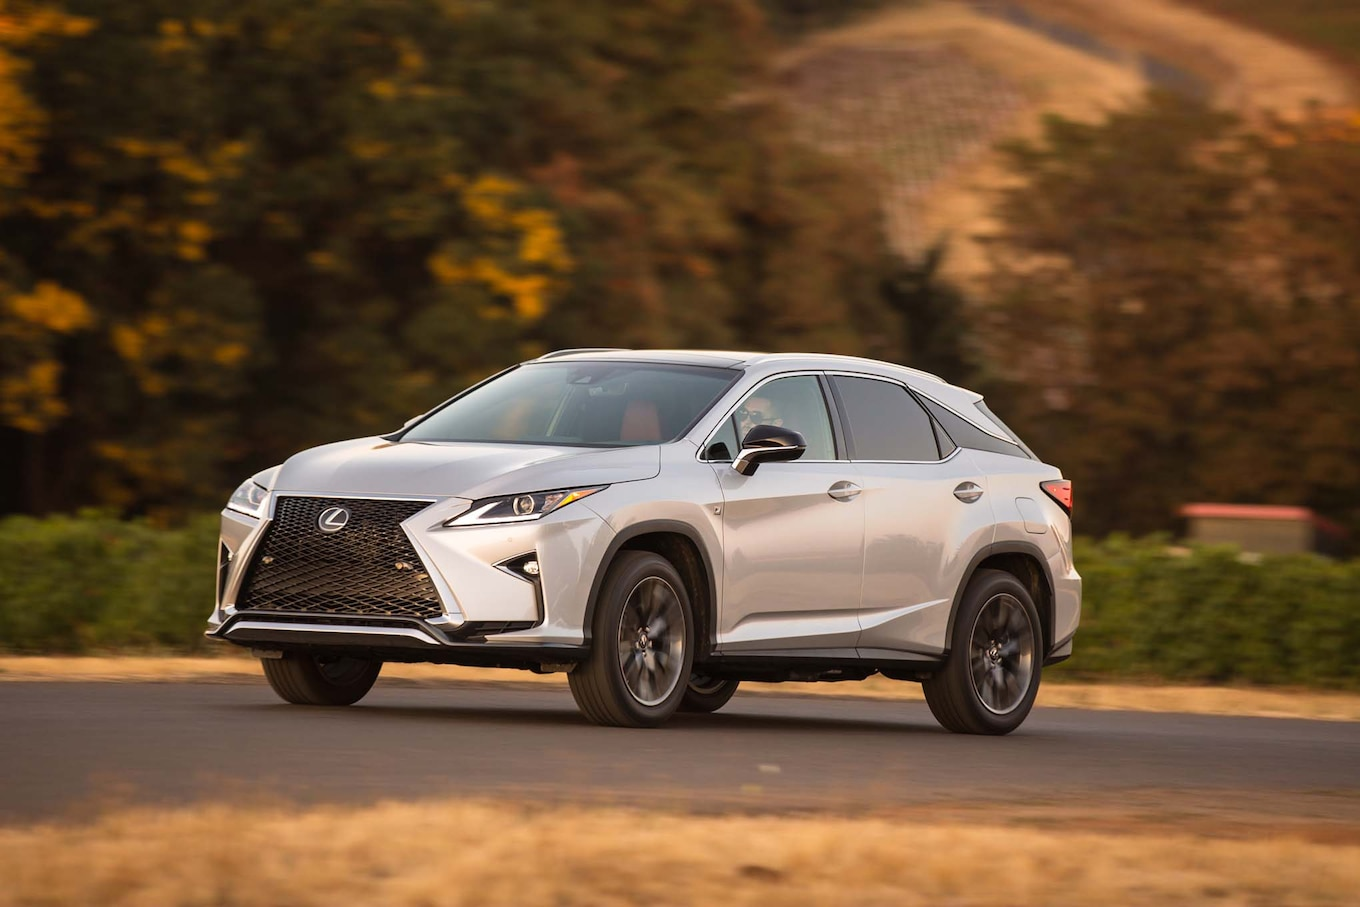 2017 Lexus RX Reviews and Rating